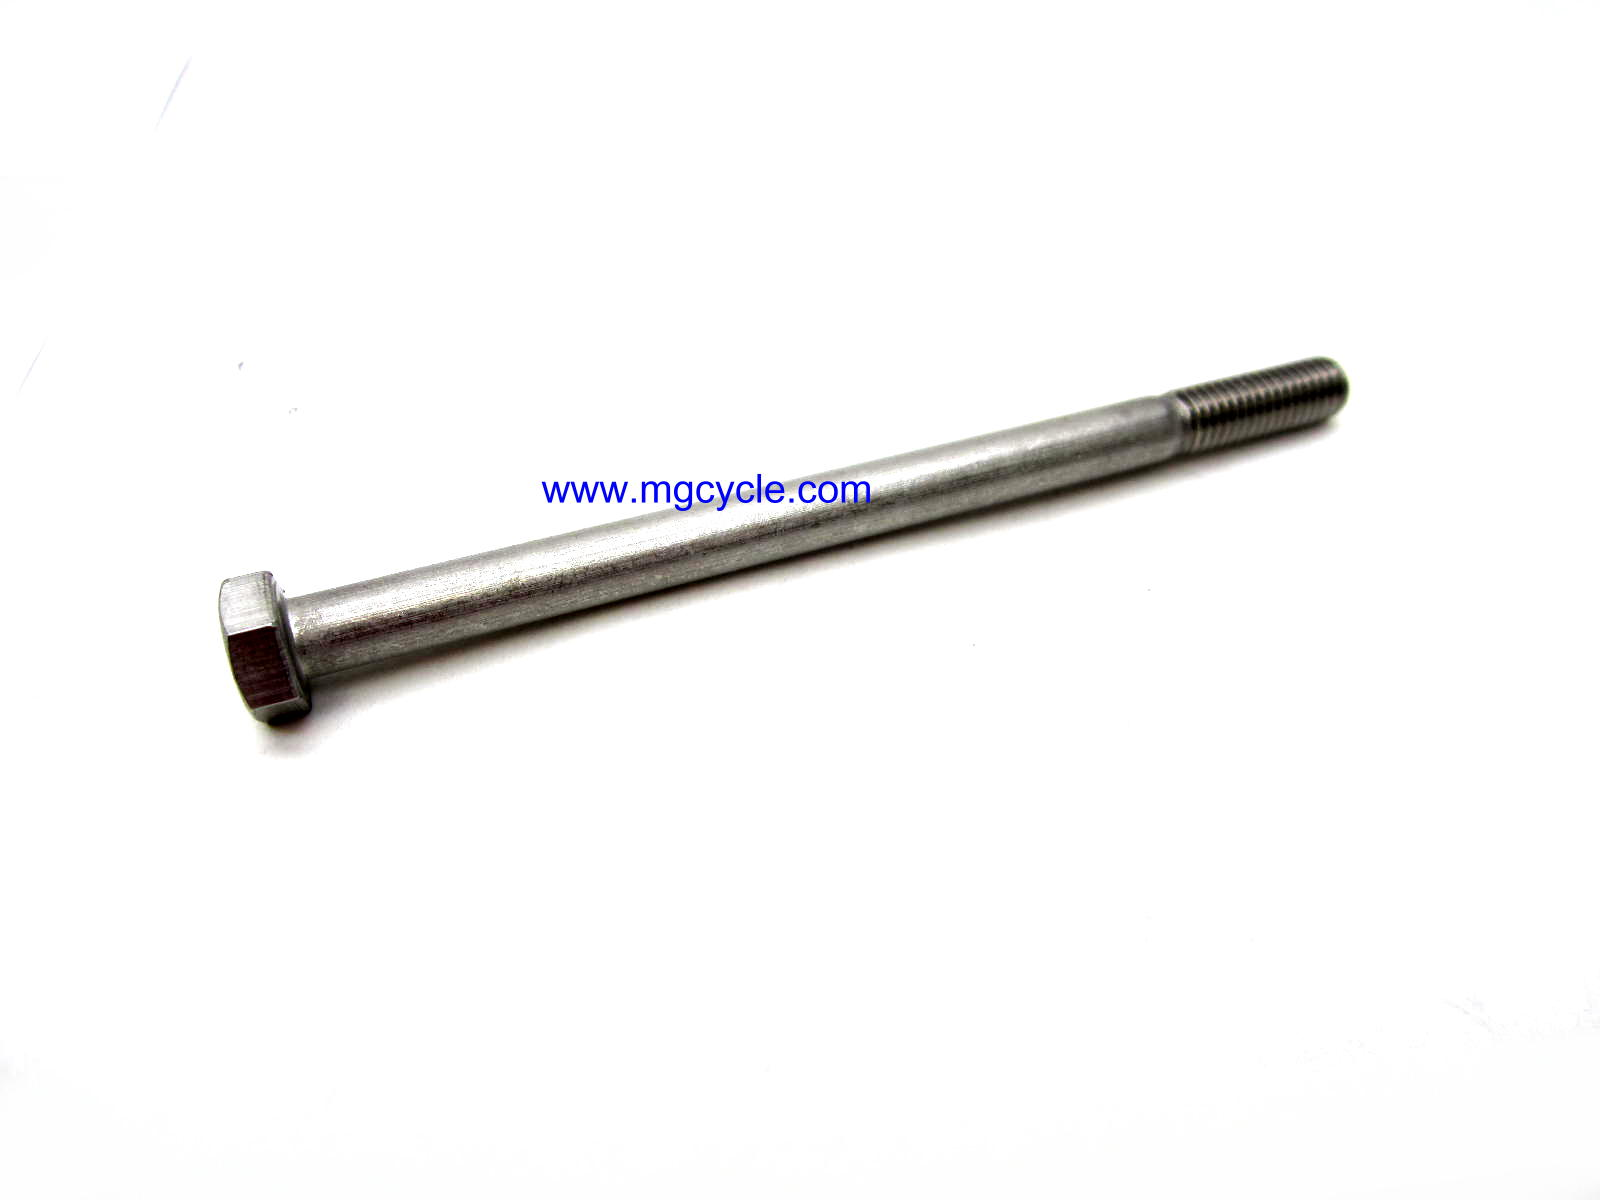 Fuel tank mounting bolt, Amb, Eld, stainless M8x120